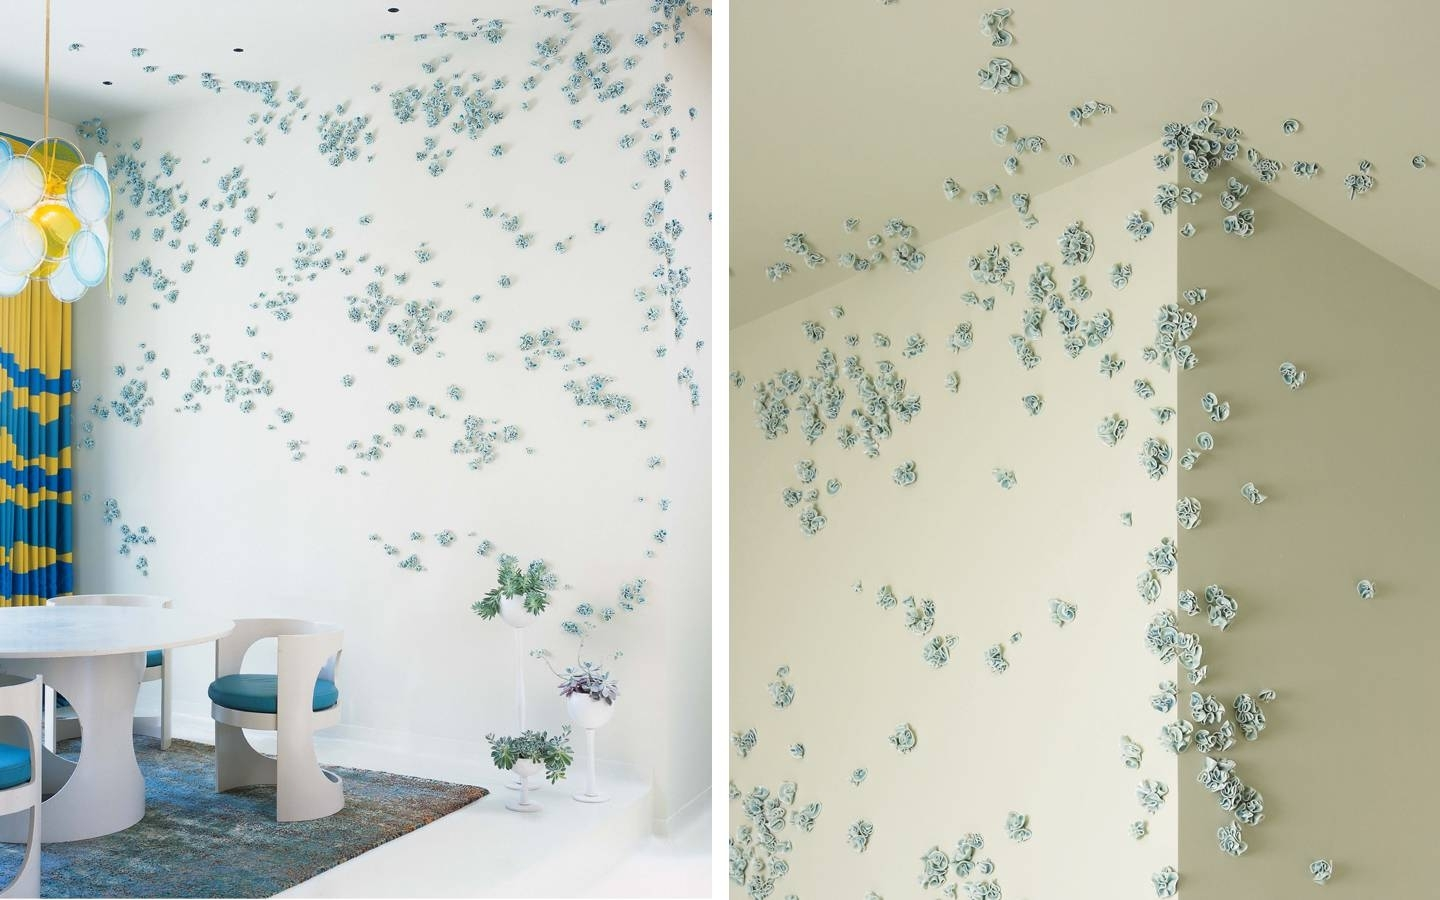 Art Installations | Amy Lau Design Within Most Recent Ceramic Wall Art (View 2 of 20)